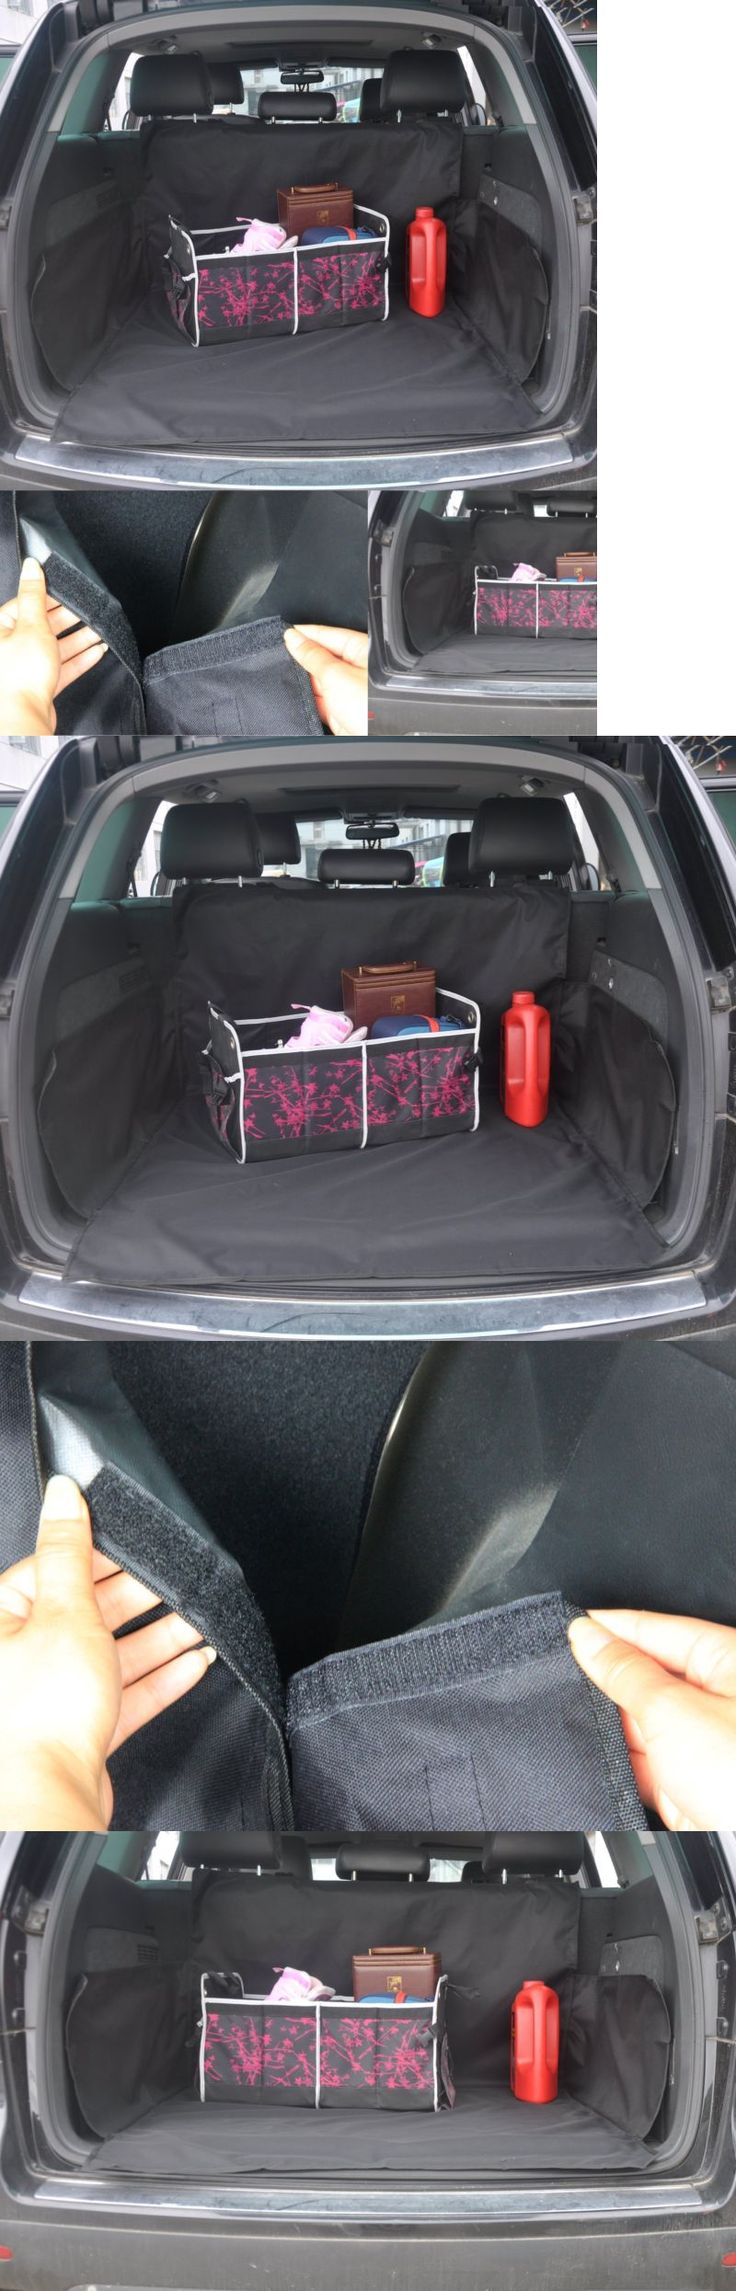 Car Seat Covers 117426: Black Oxford Pet Car Suv Van Back Trunk Cargo Bed Liner Cover Waterproof For Dog -> BUY IT NOW ONLY: $31.84 on eBay!